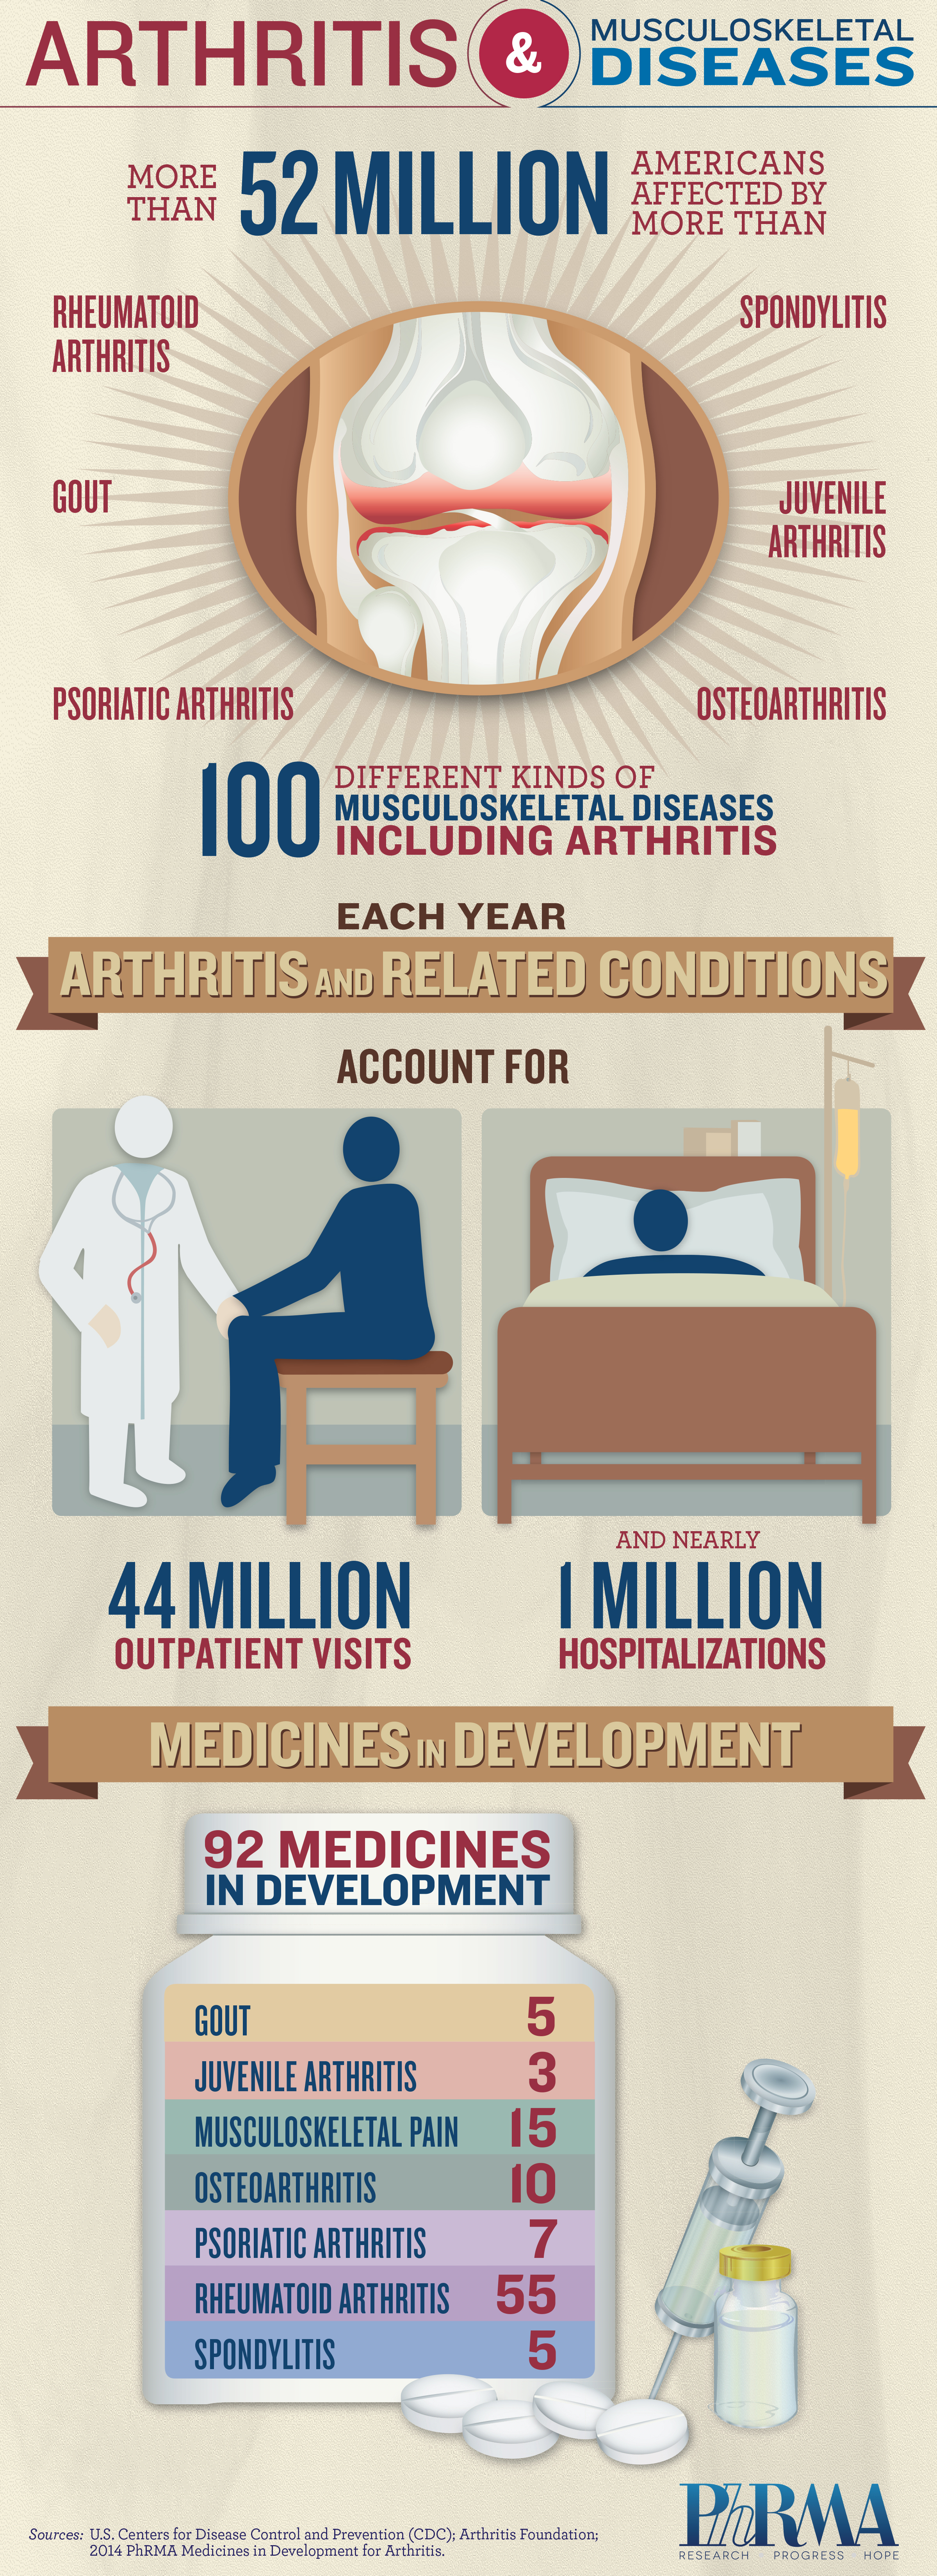 Arthritis and Musculoskeletal Diseases